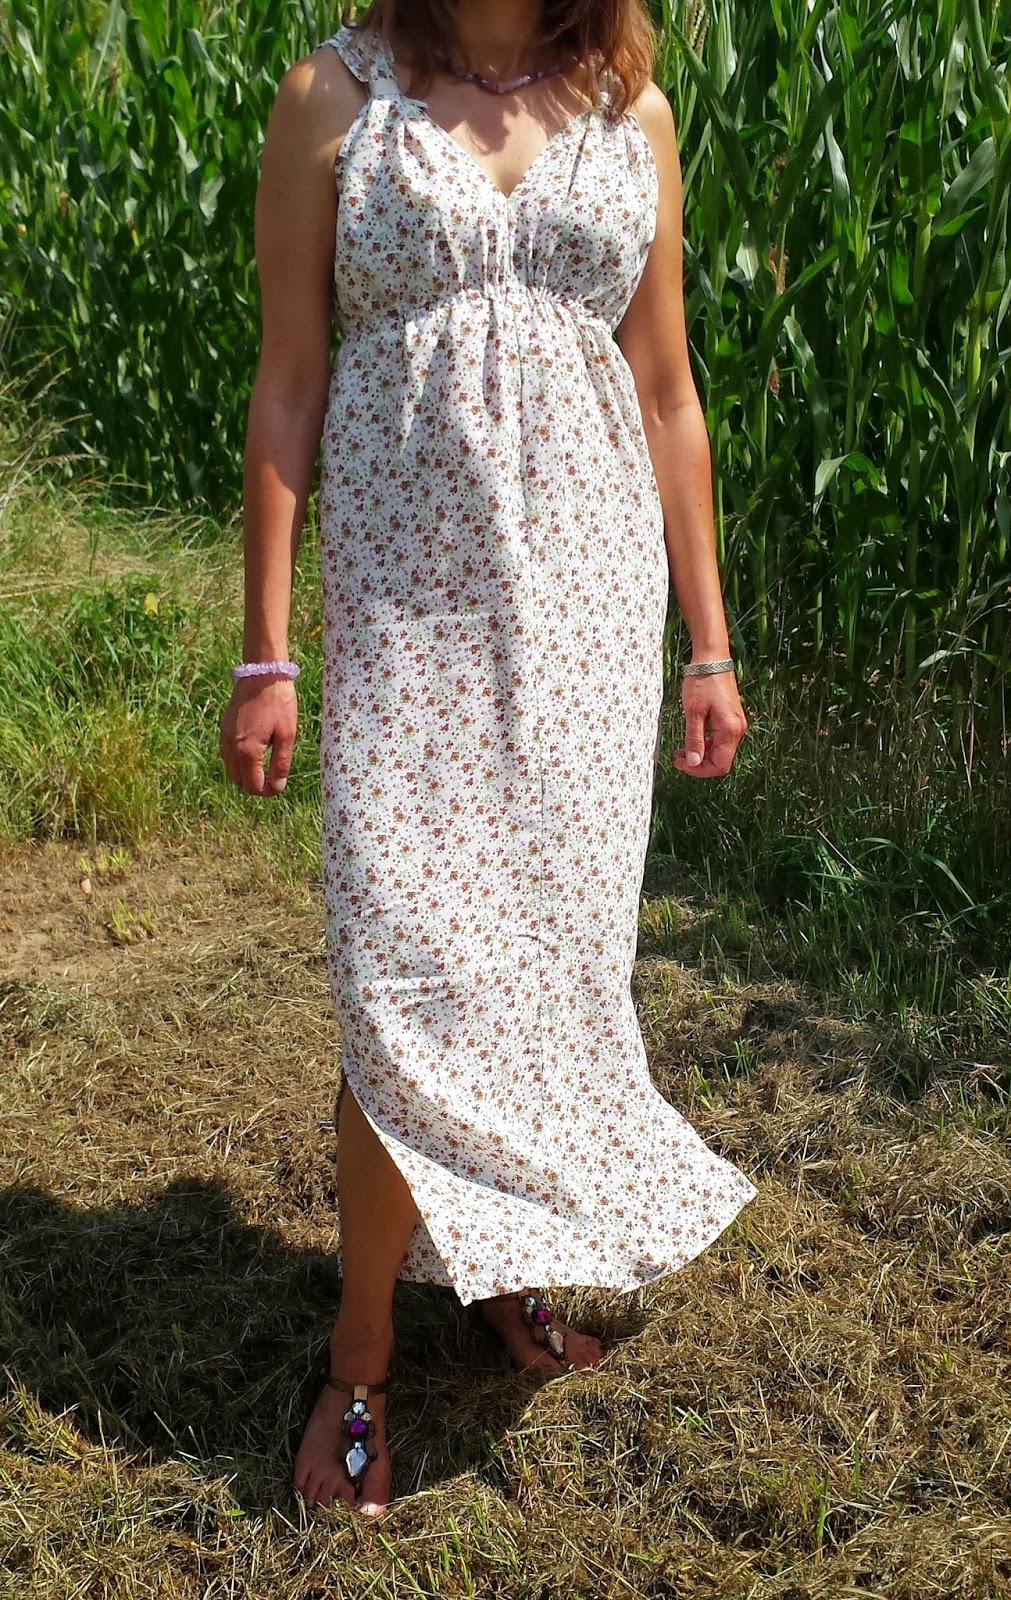 Extrem Summer Chic - Maxi Dress Bettinael.Passion.Couture.Made in france SM82